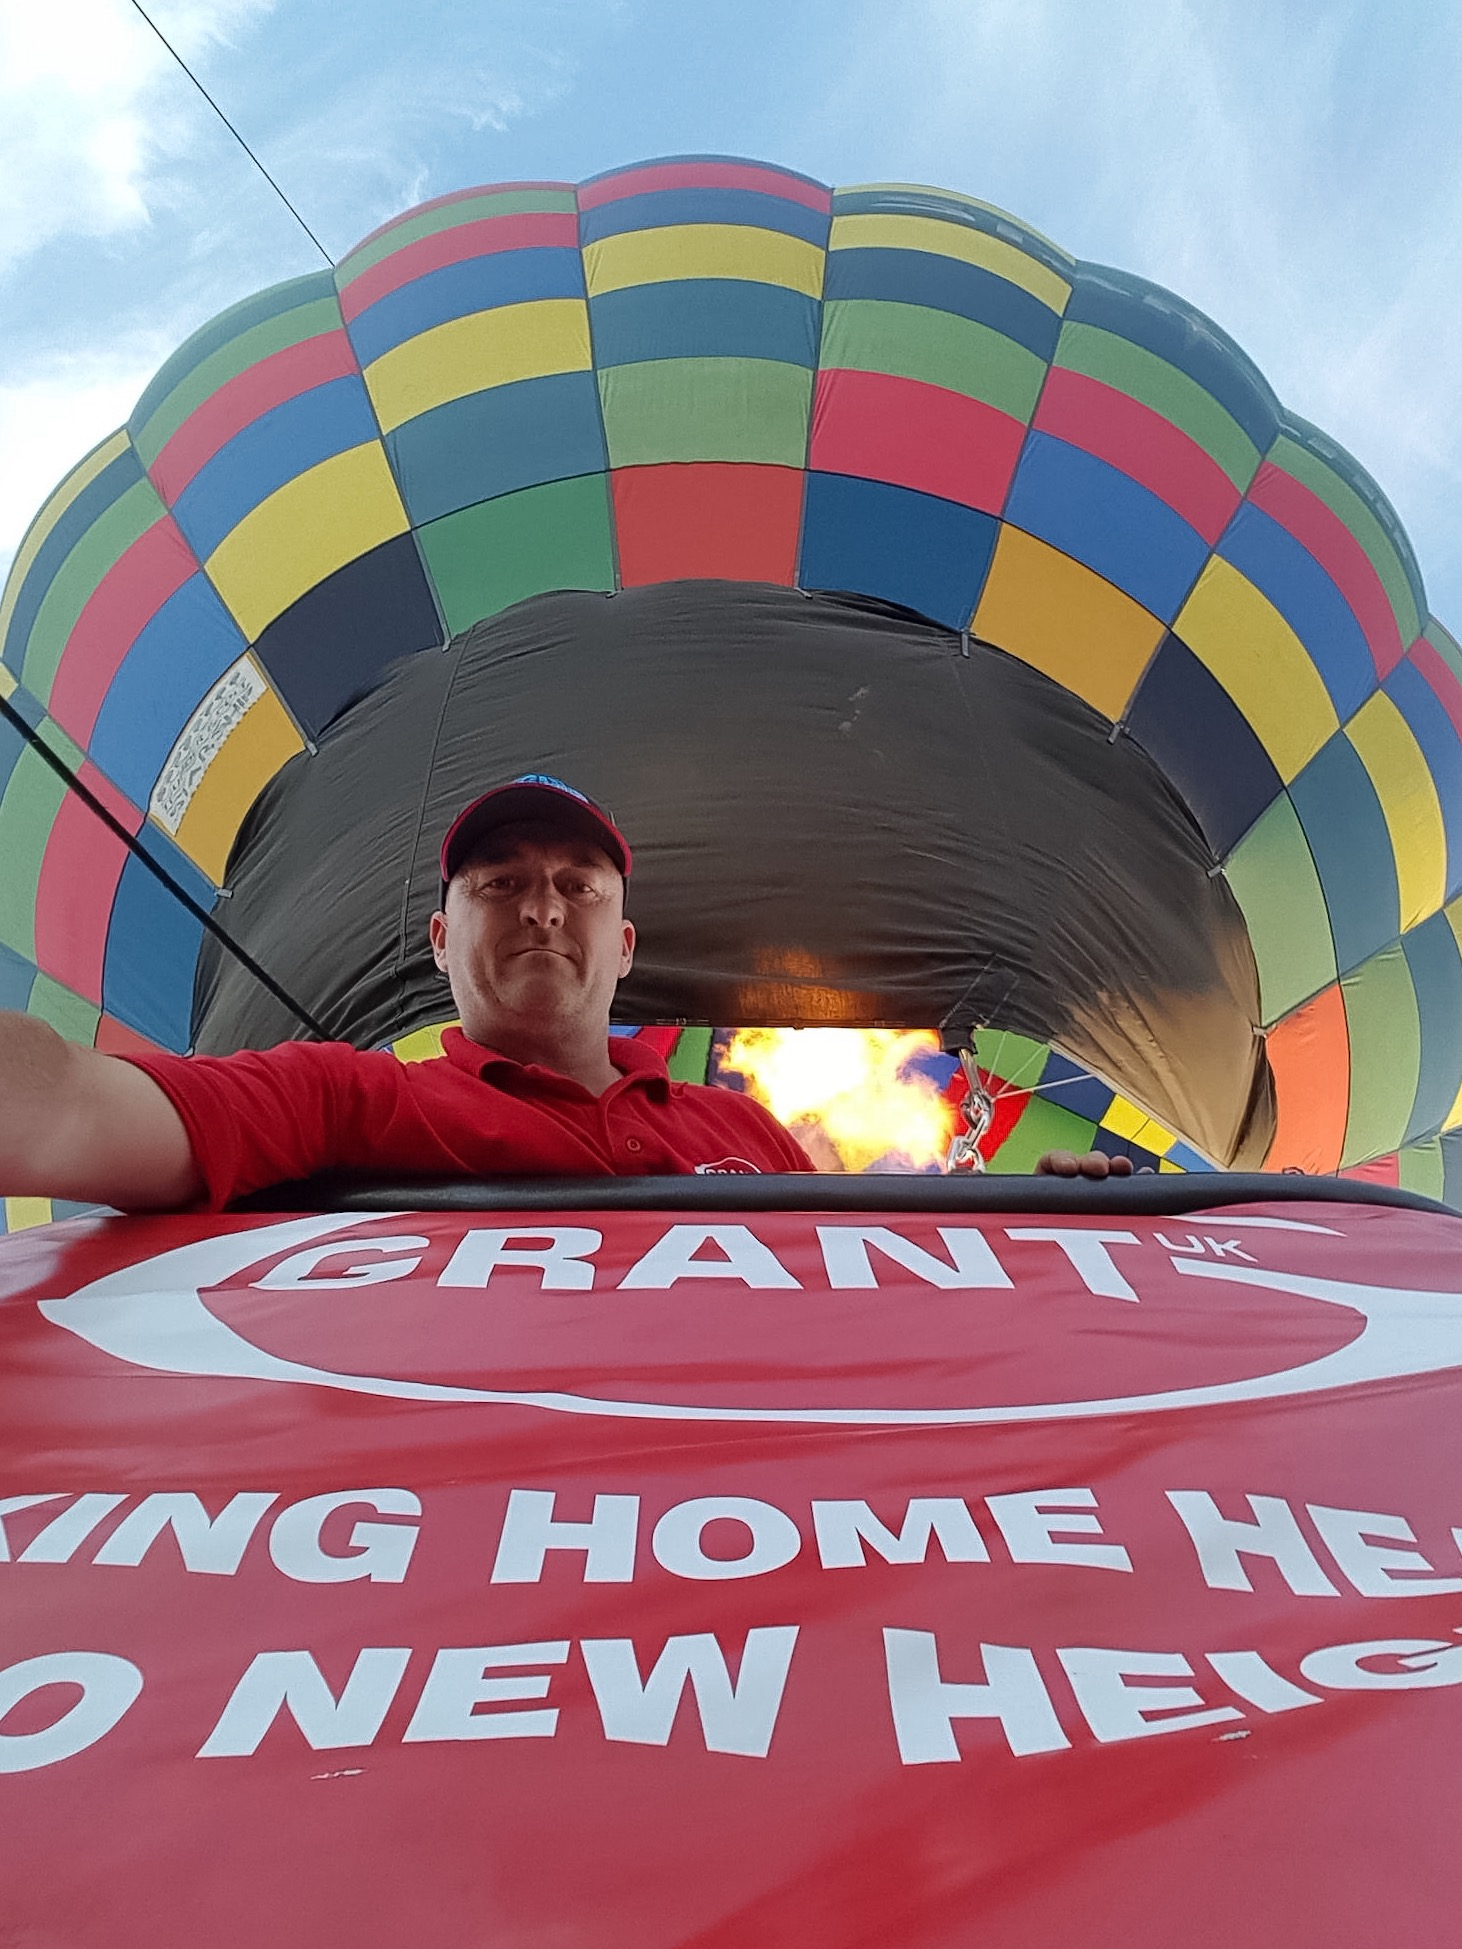 Grant UK takes home heating to new heights at Bristol Balloon Fiesta!